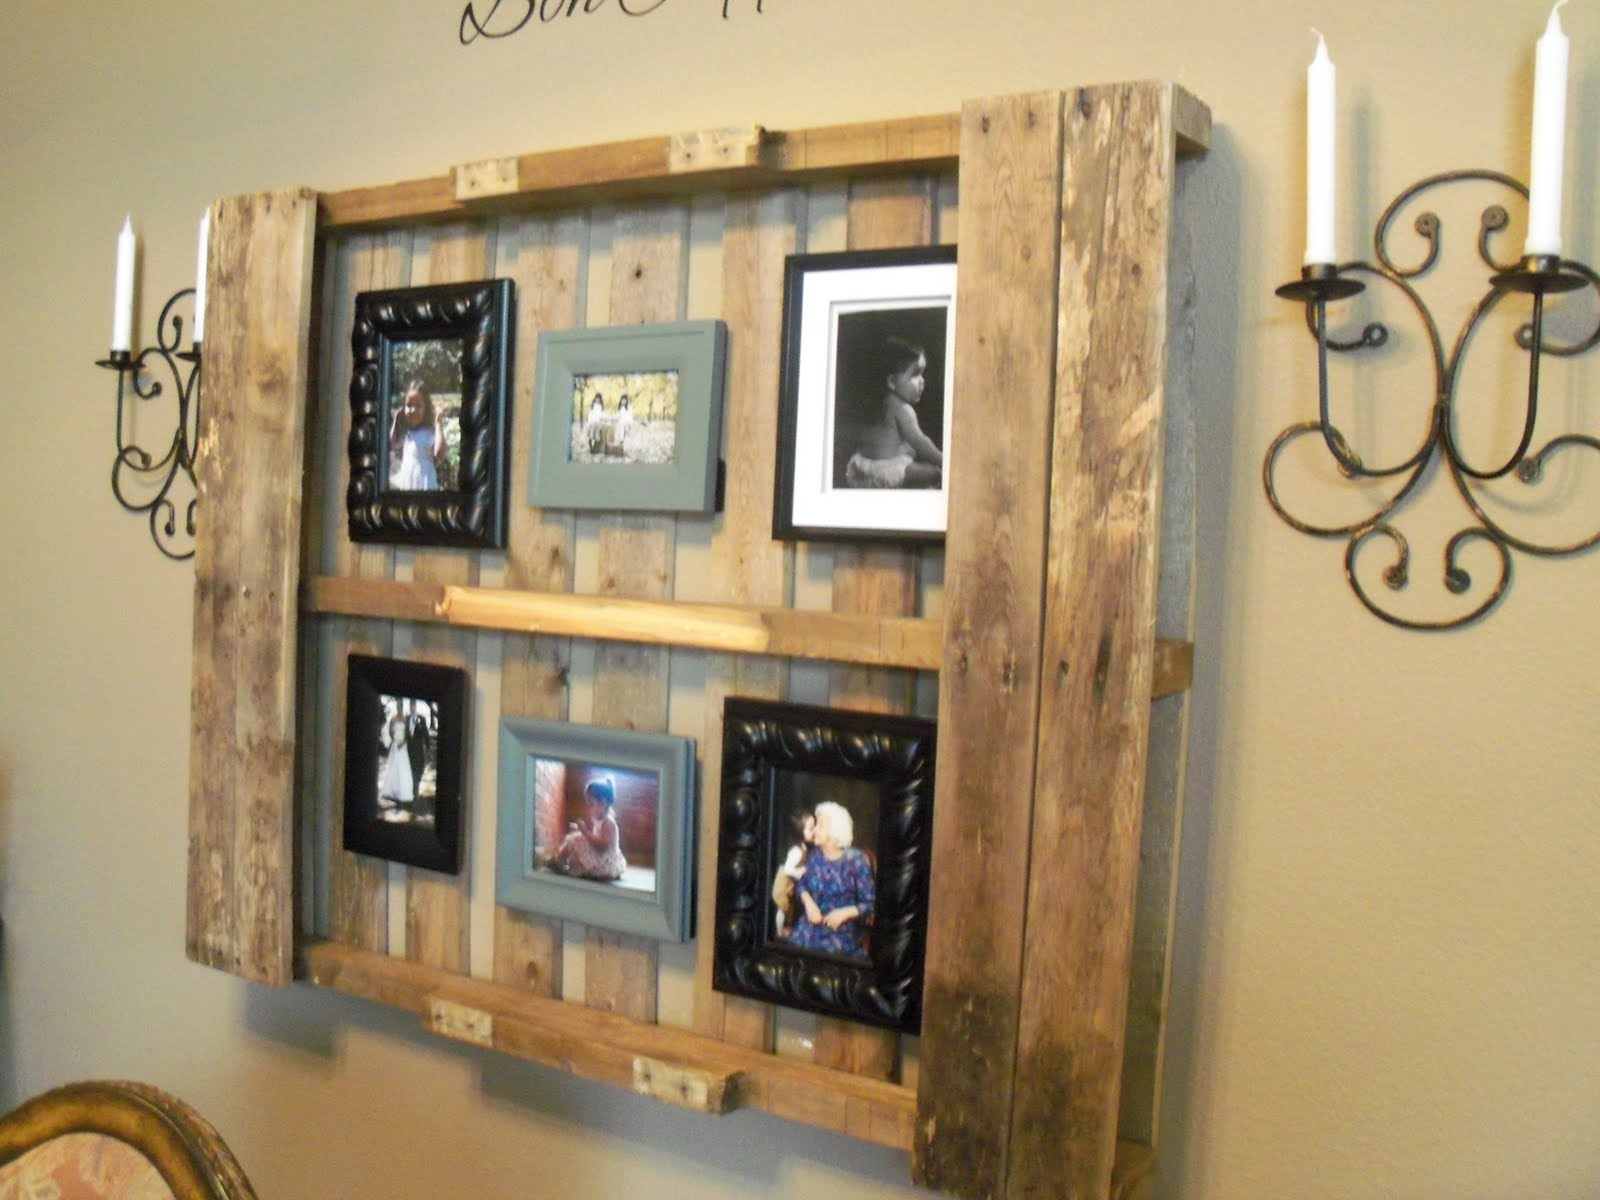 The baeza blog pallet decor Pallet ideas